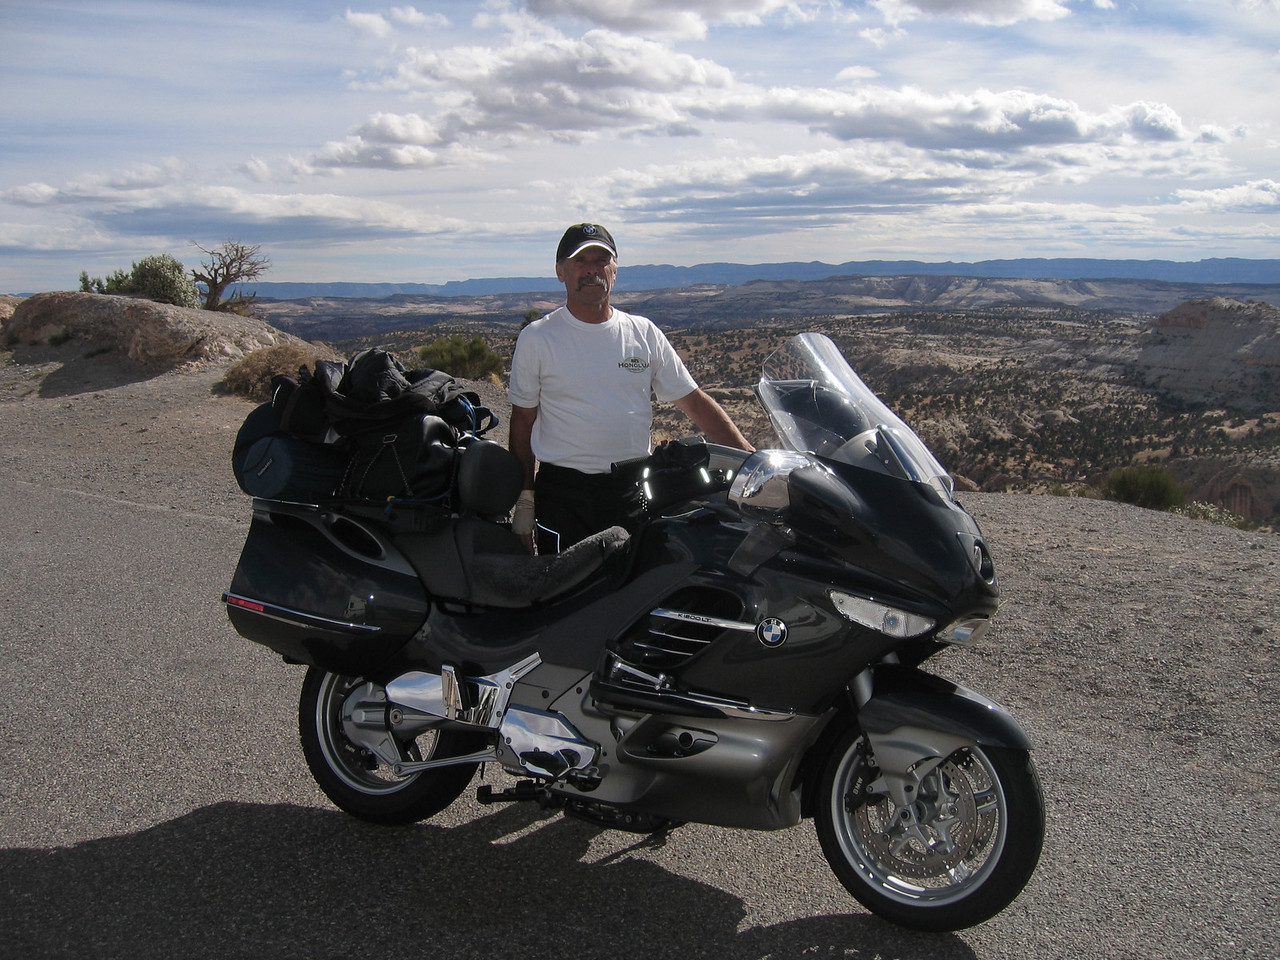 Here's Doug and his one-of-a-kind K1200LT.  He knows how to make it go!